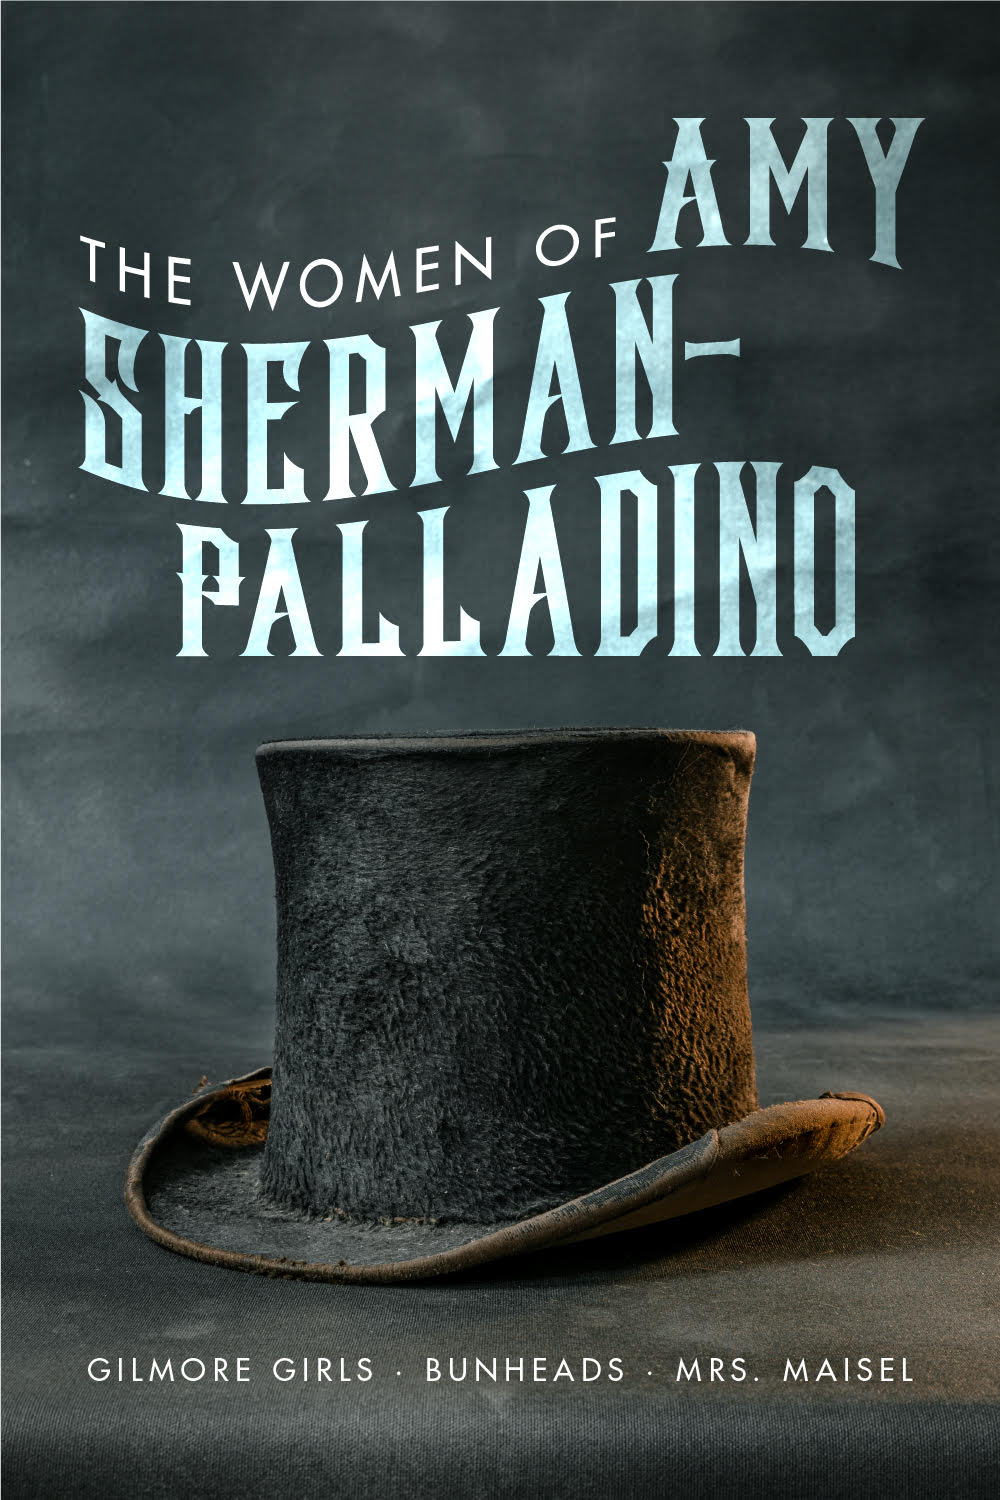 Women of Amy Sherman-Palladino: Gilmore Girls, Bunheads and Mrs. Maisel